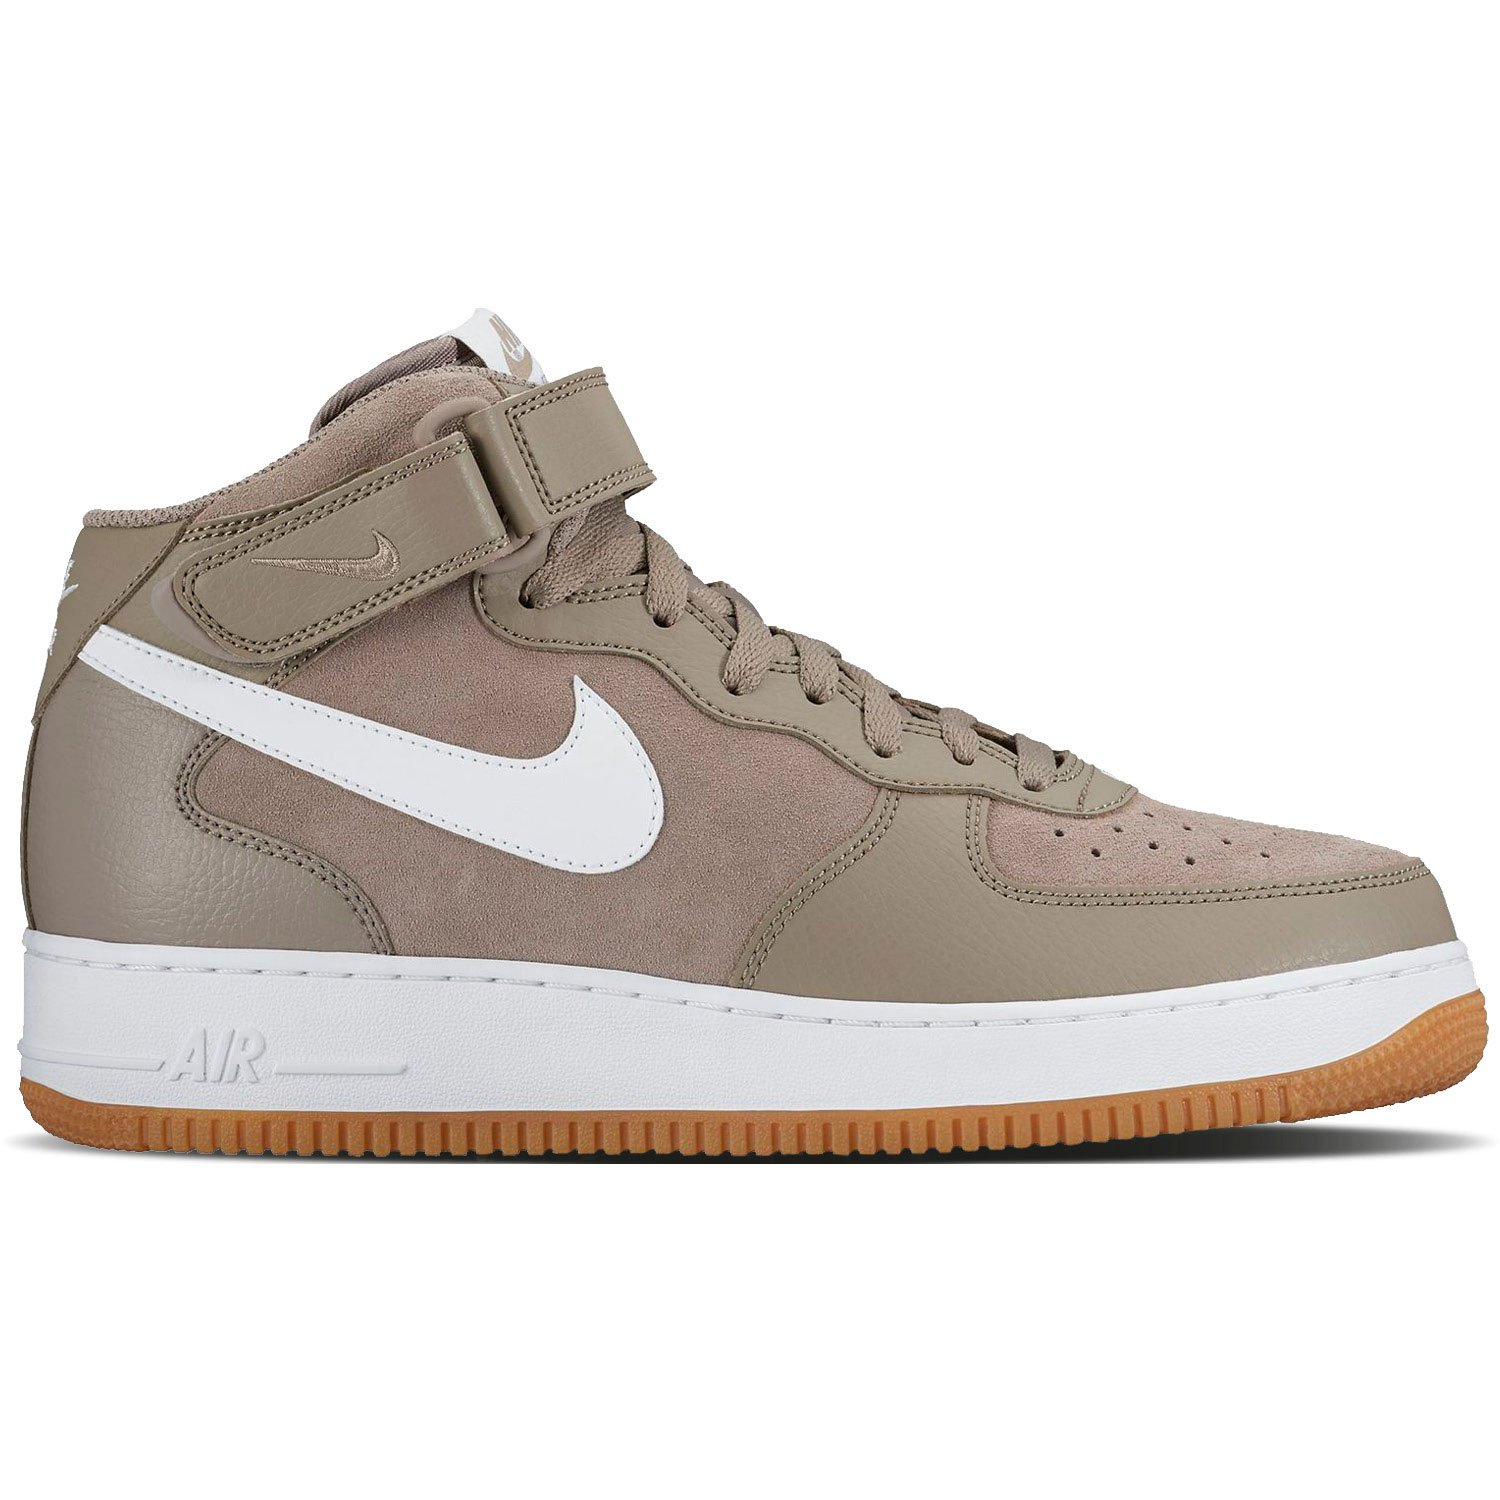 Nike Air Force 1 Mid '07 Light Taupe 315123 204